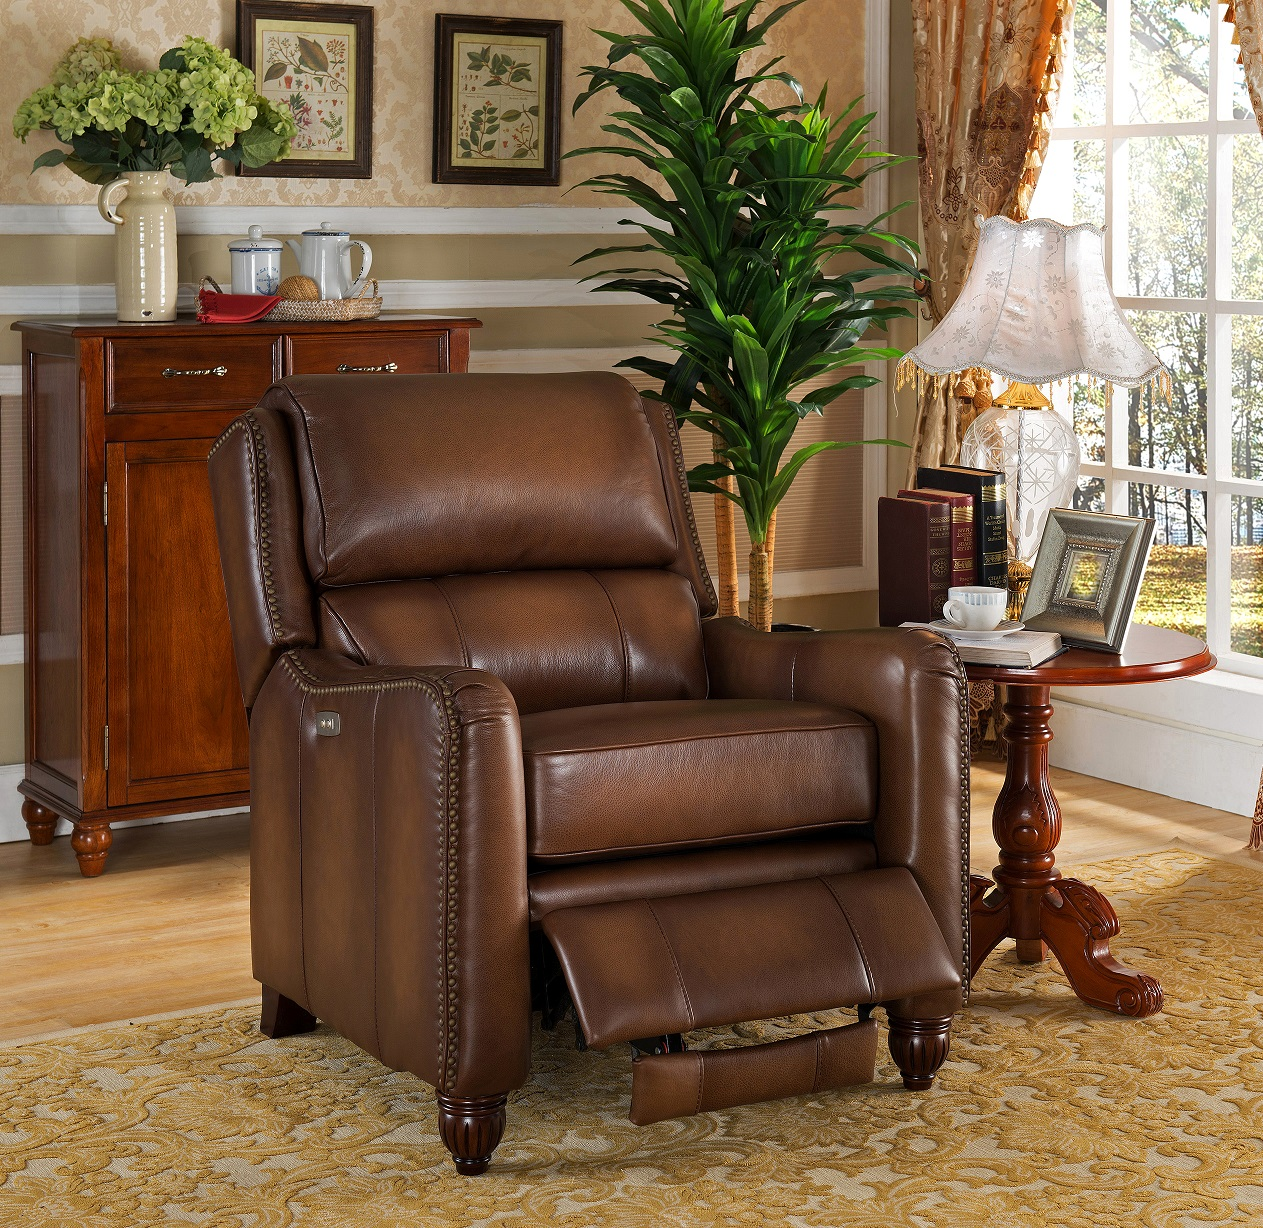 Brilliant Concord 100 Brown Leather Power Recliner Ocoug Best Dining Table And Chair Ideas Images Ocougorg